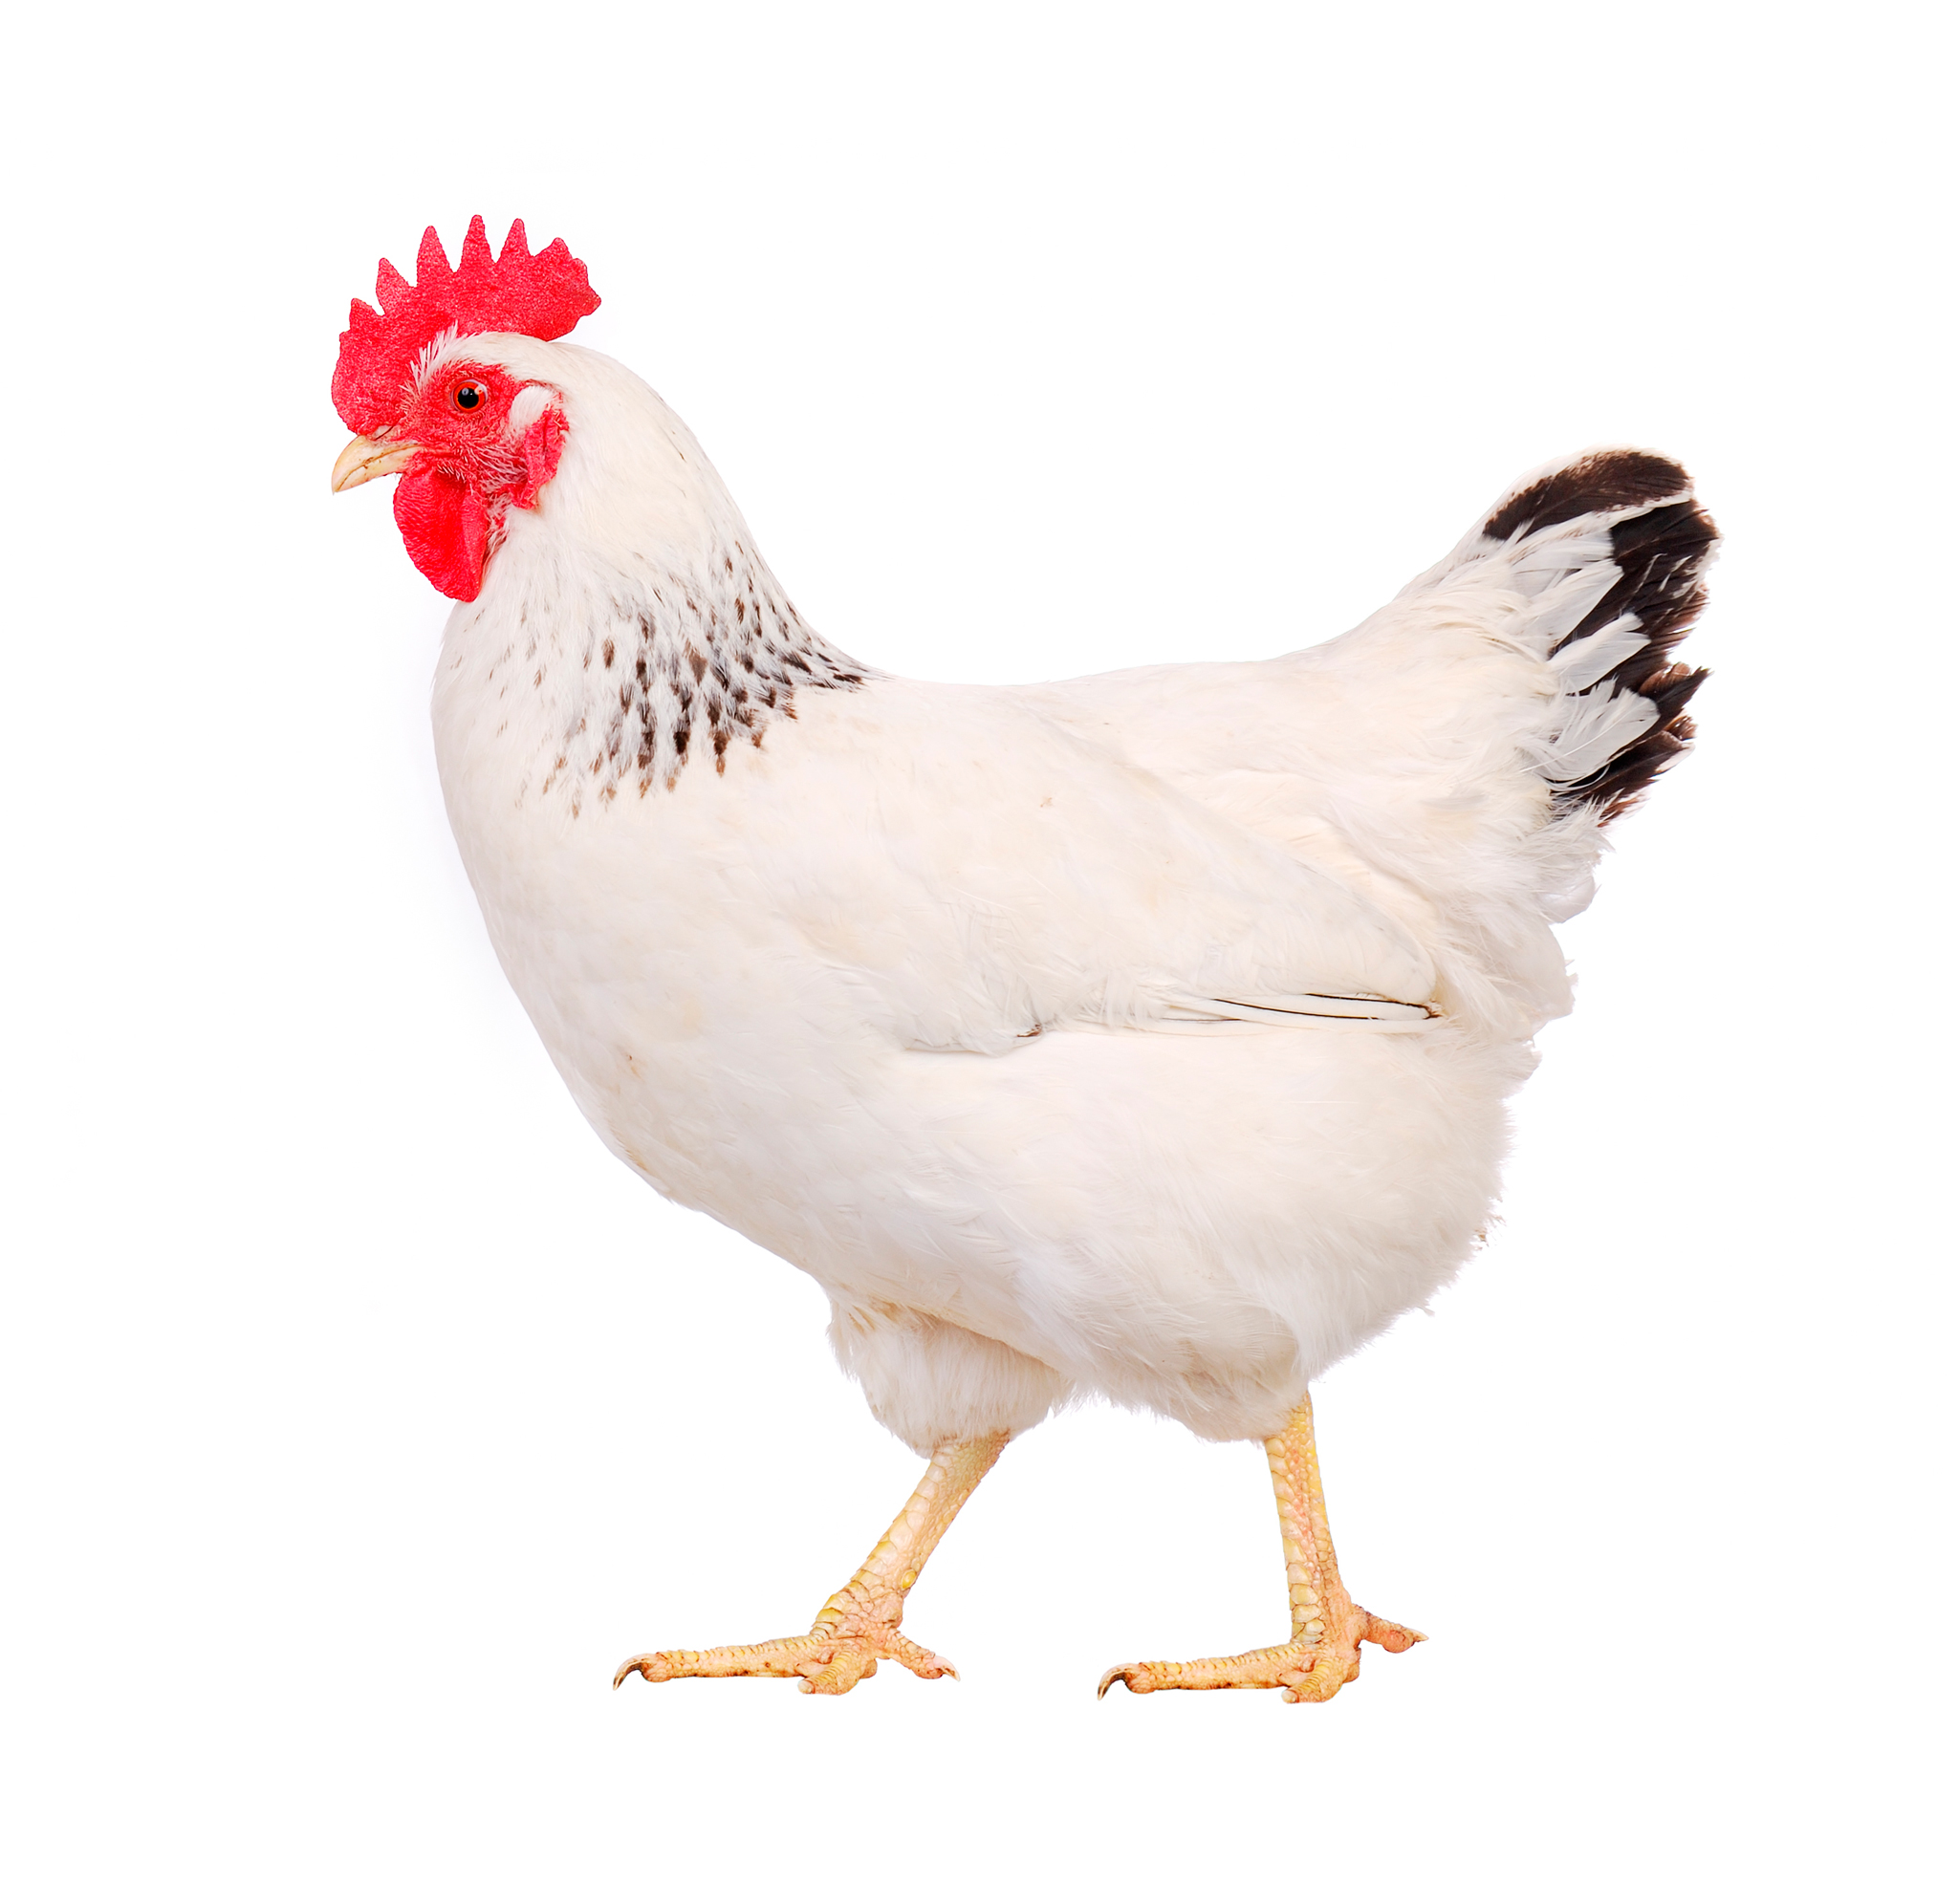 White Chicken Image 1931.45 Kb